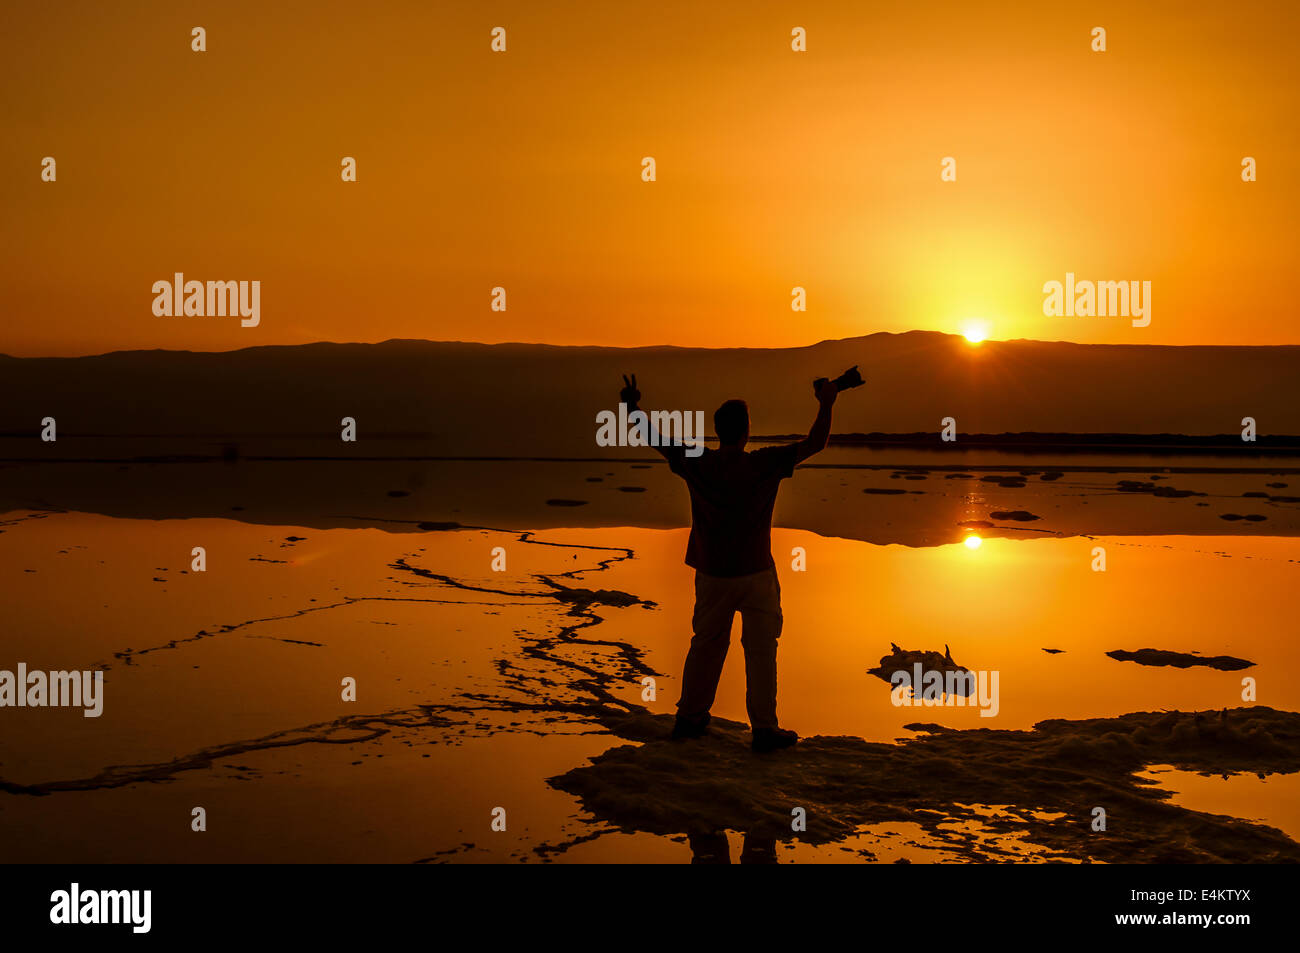 Silhouette of a man appreciating the sunrise Photographed at the Dead Sea Israel - Stock Image